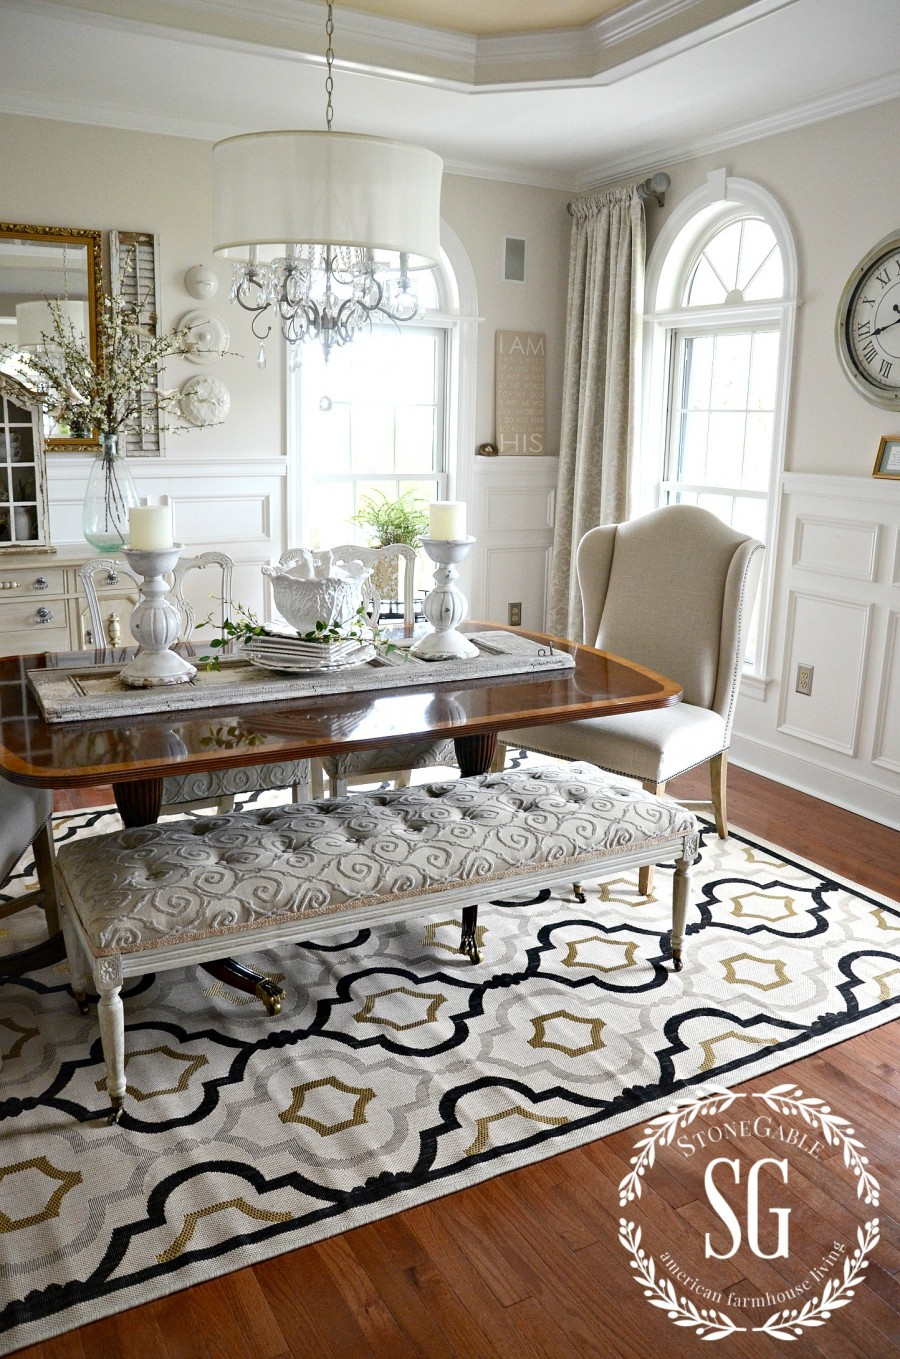 5 Rules For Choosing The Perfect Dining Room Rug Stonegableblog